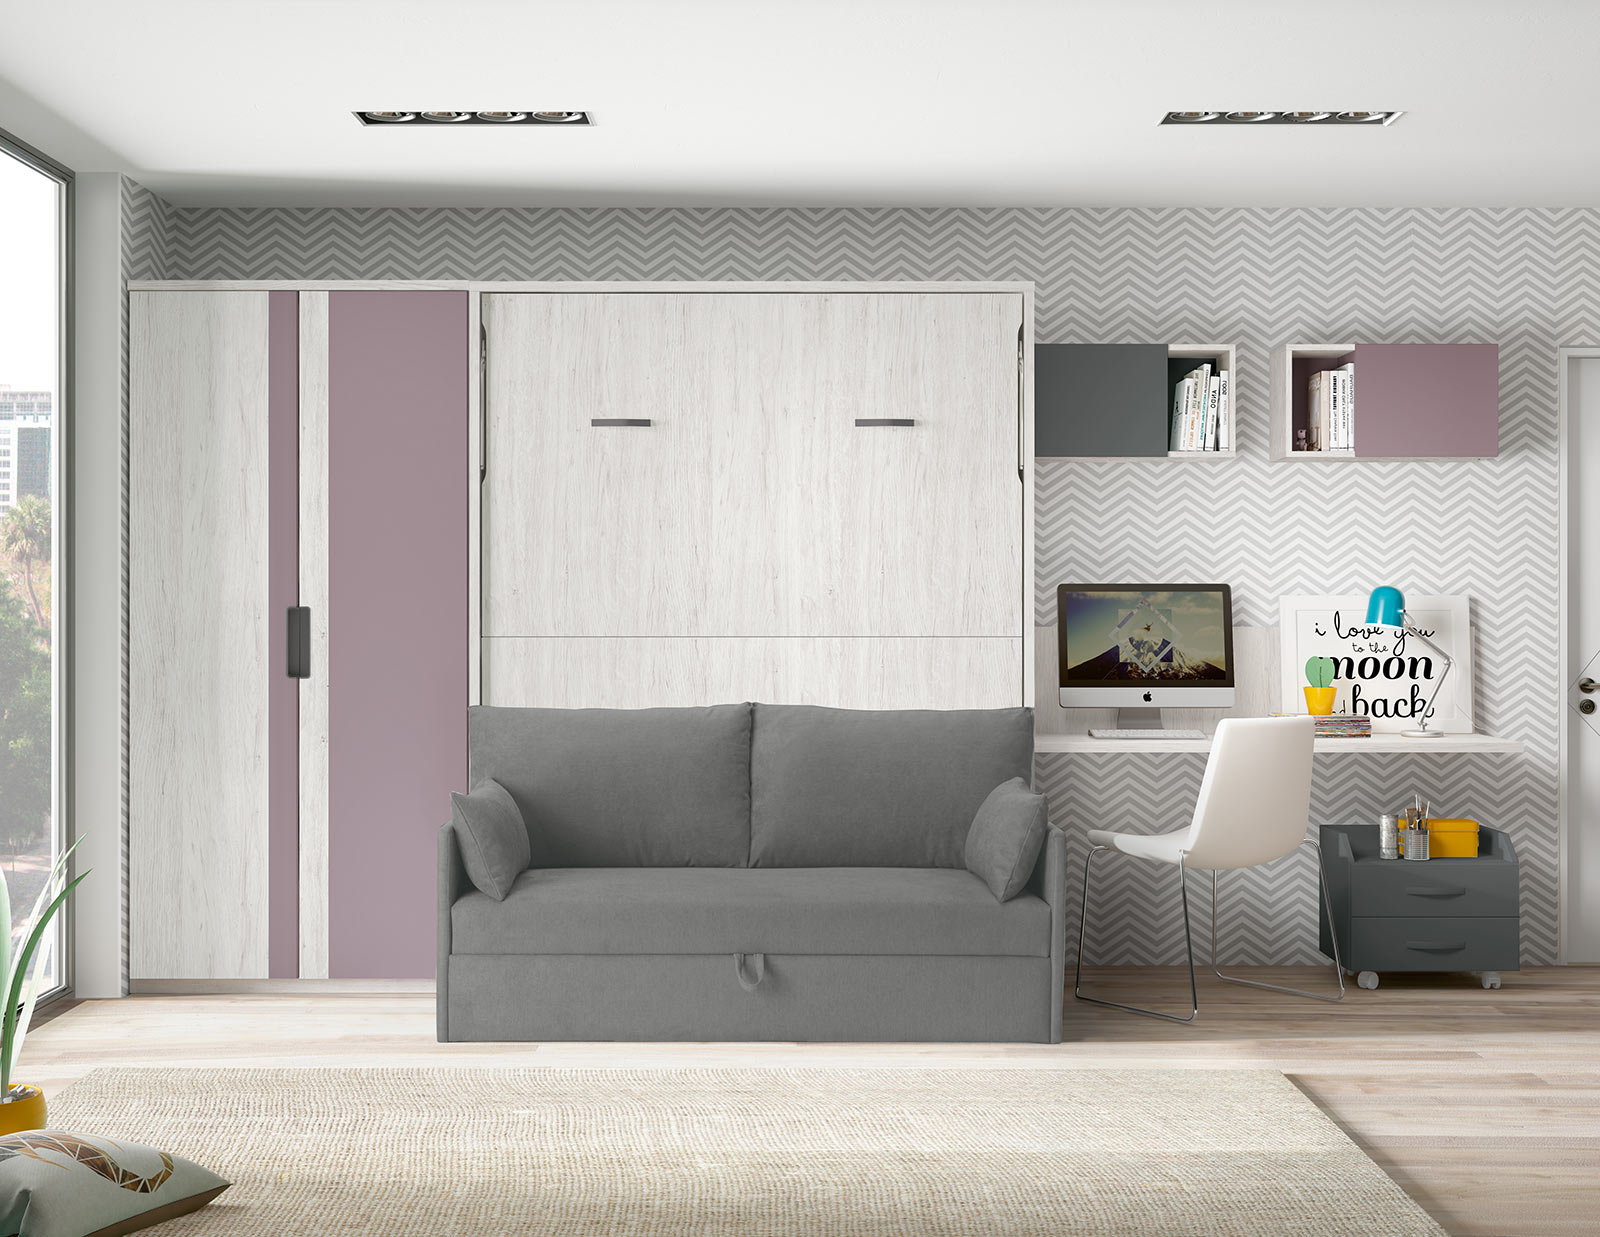 Brilliant Space Sofa Wallbed The London Wallbed Company Machost Co Dining Chair Design Ideas Machostcouk